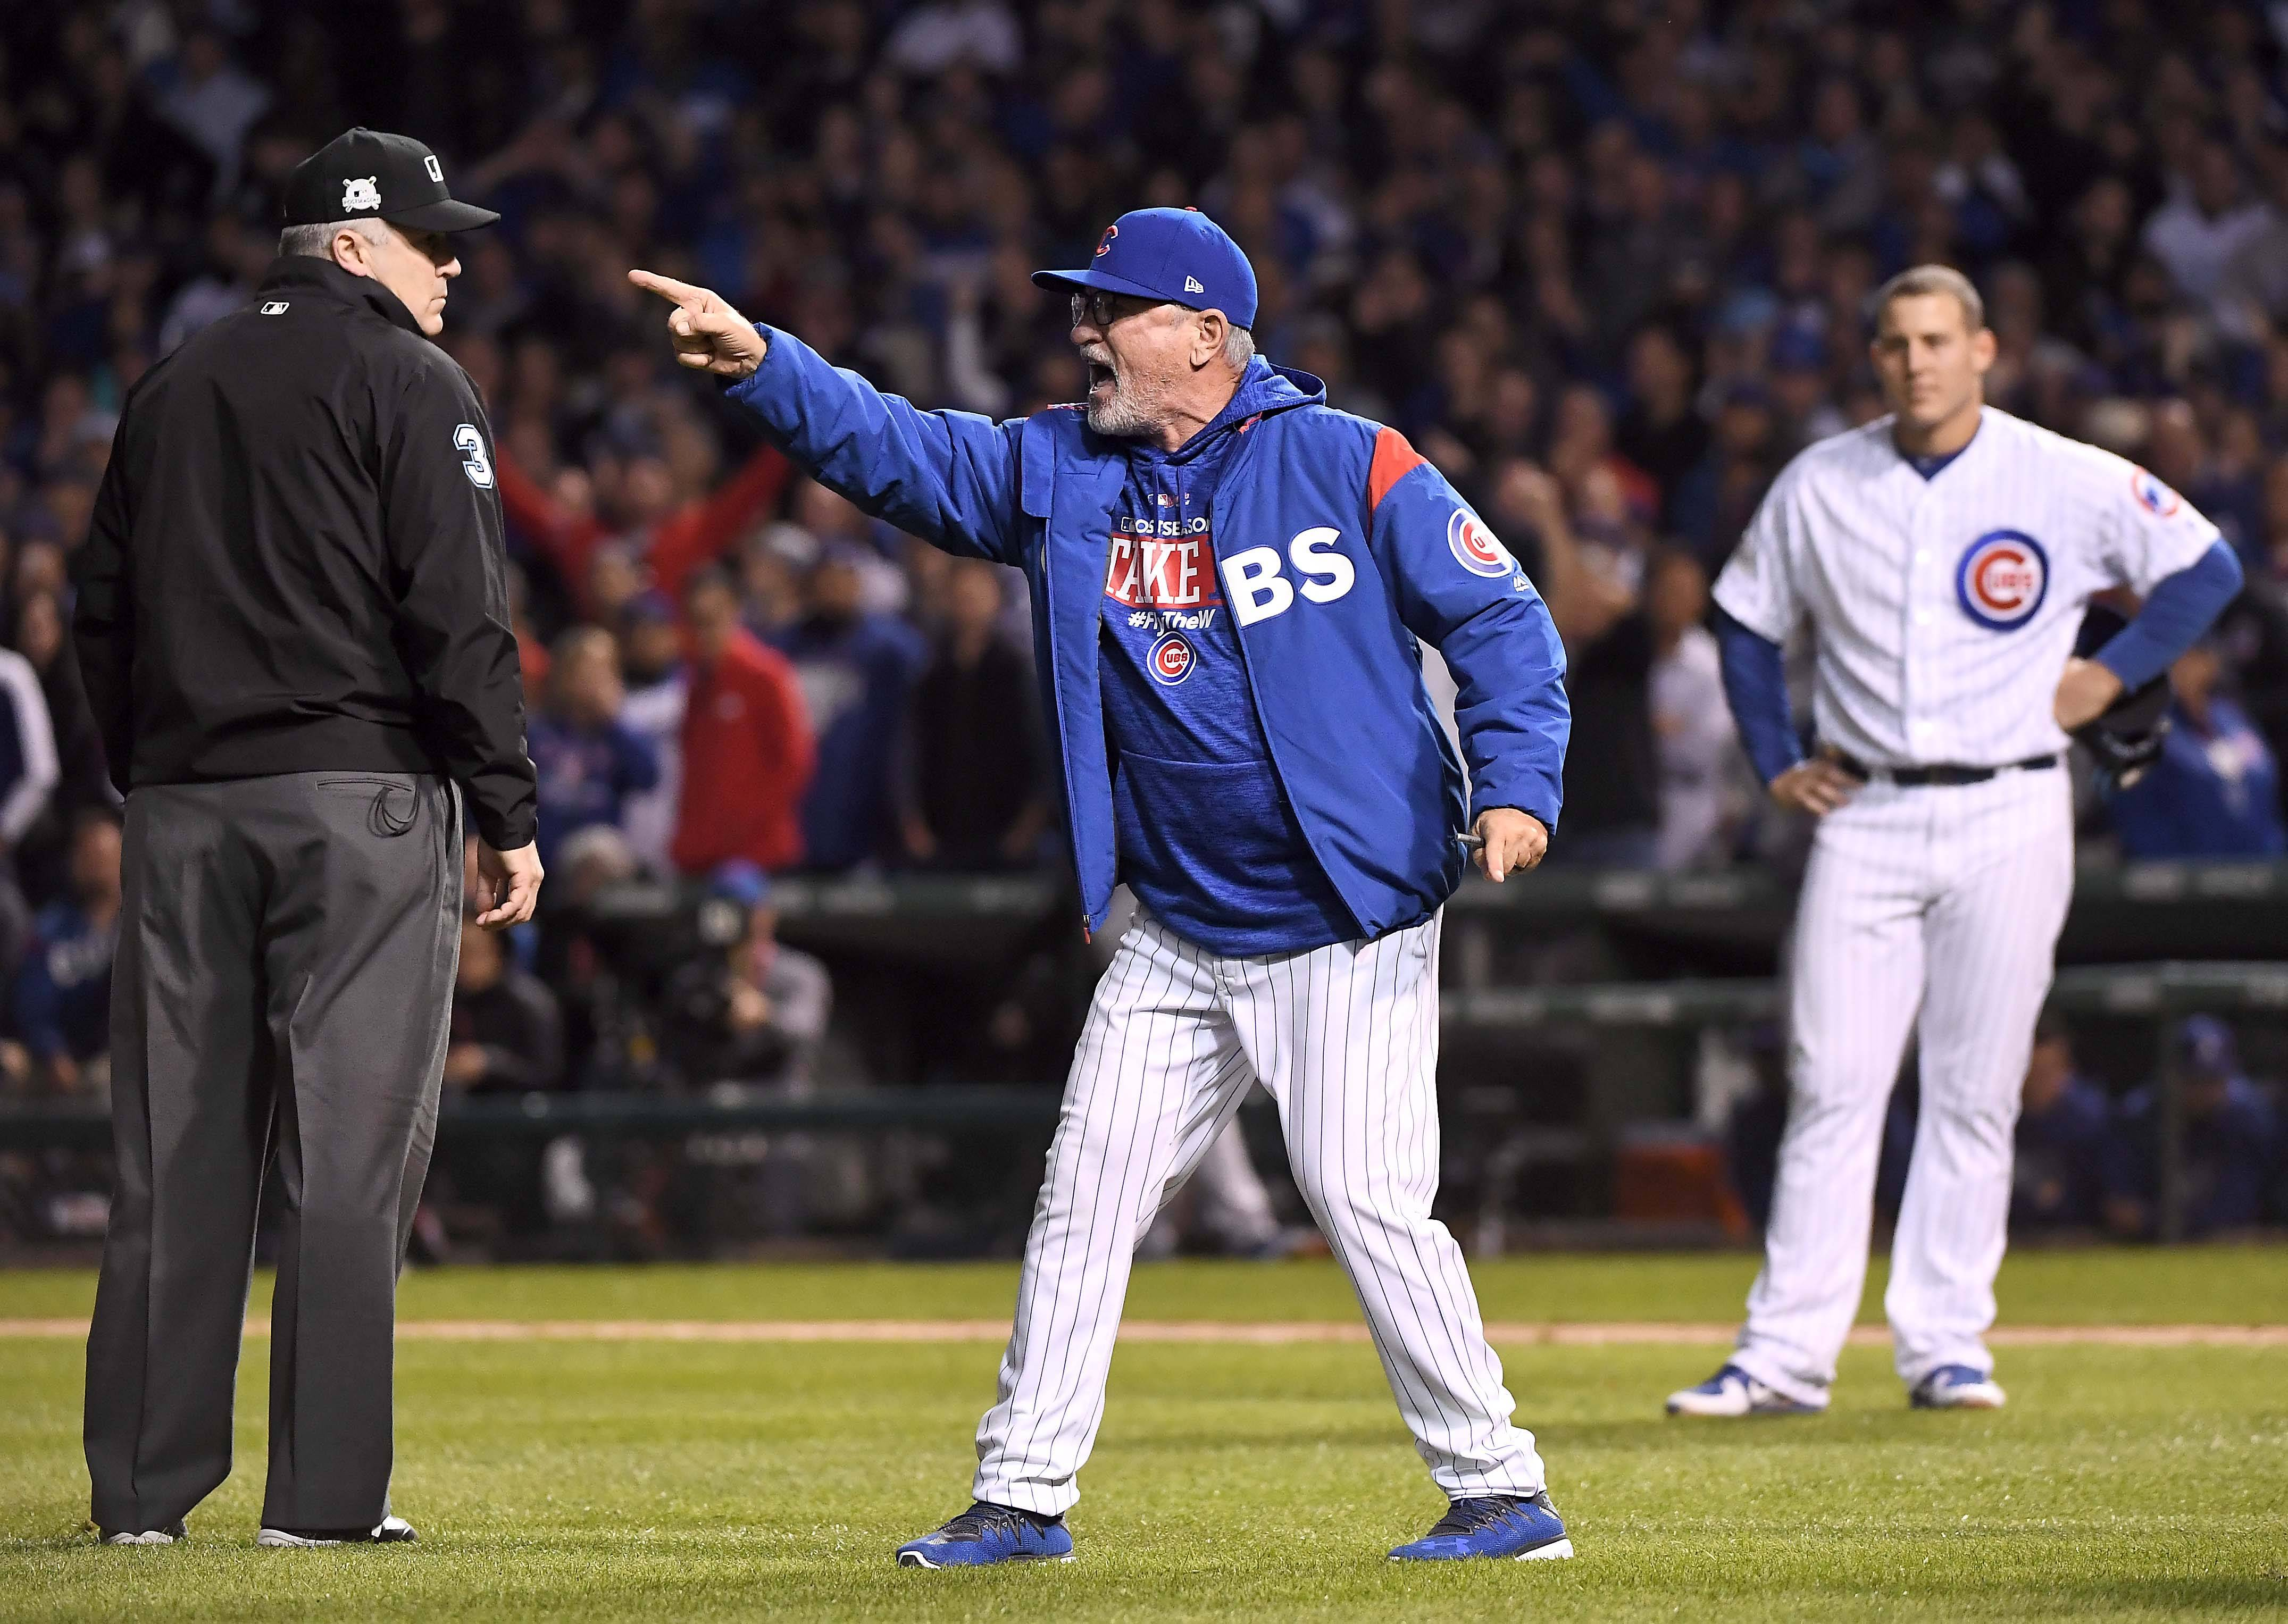 Imrem: Maddon the kind of manager Chicago loves